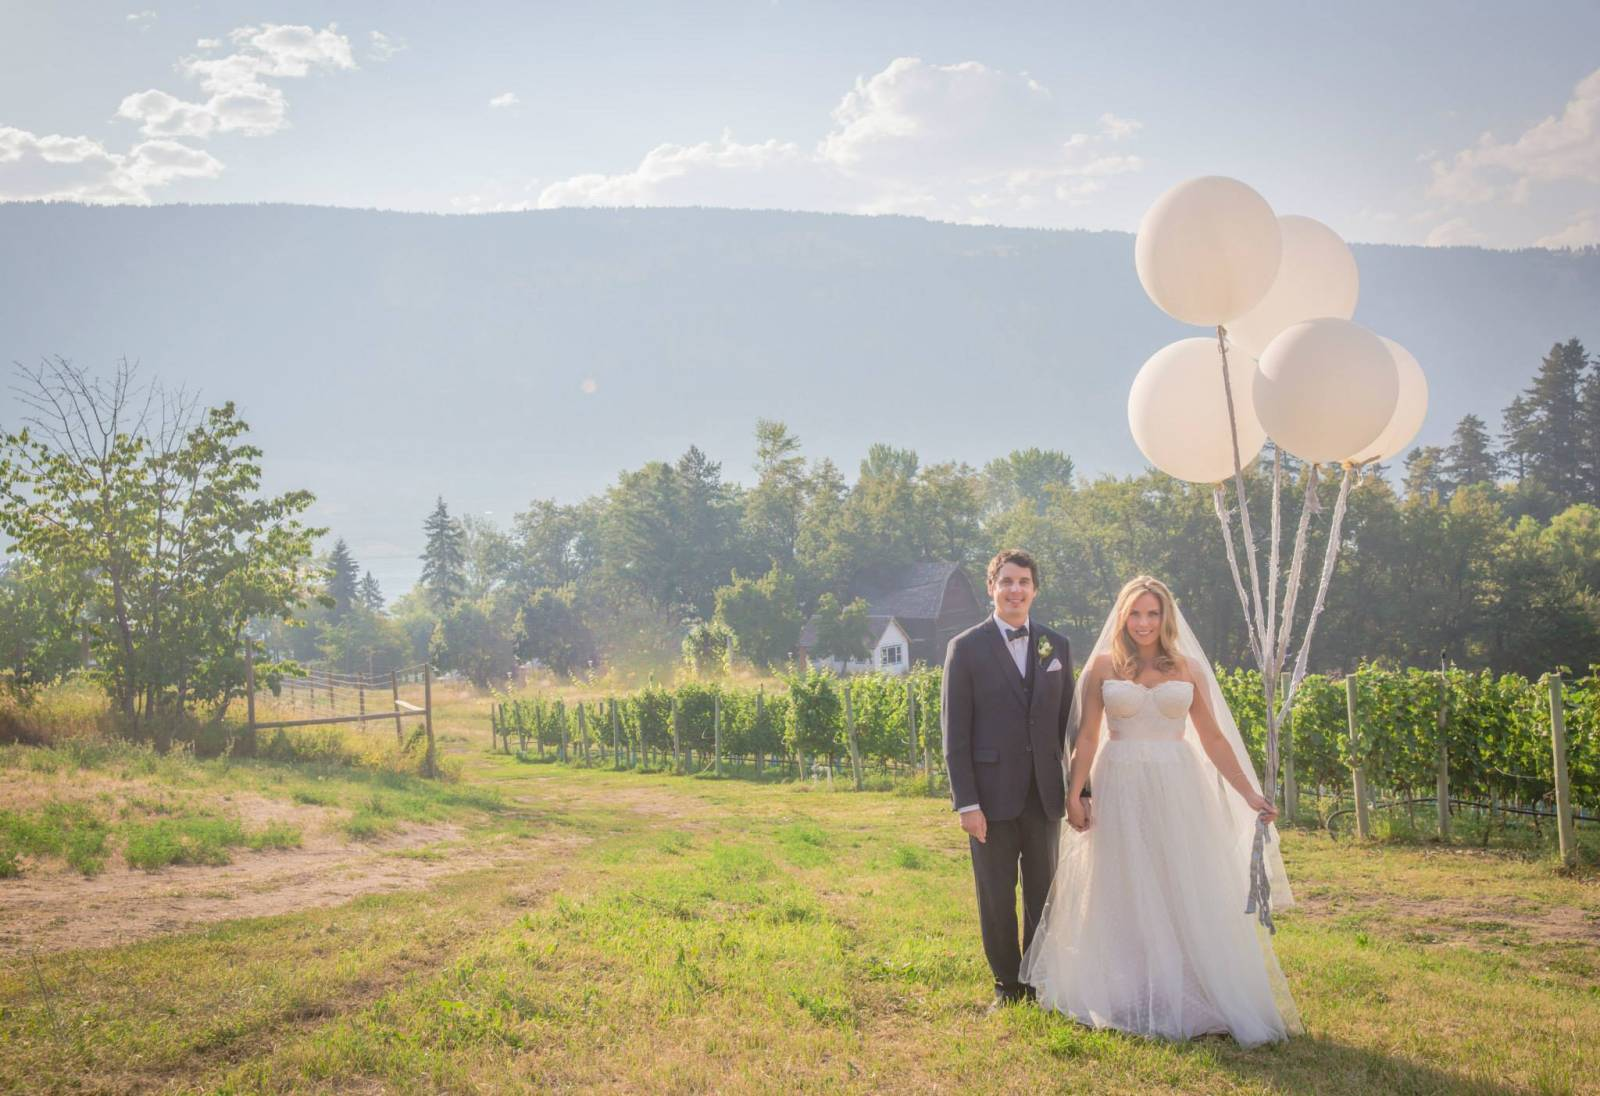 mountain wedding portrait inspiration | bride holding large white balloons planned by Emma McCormick